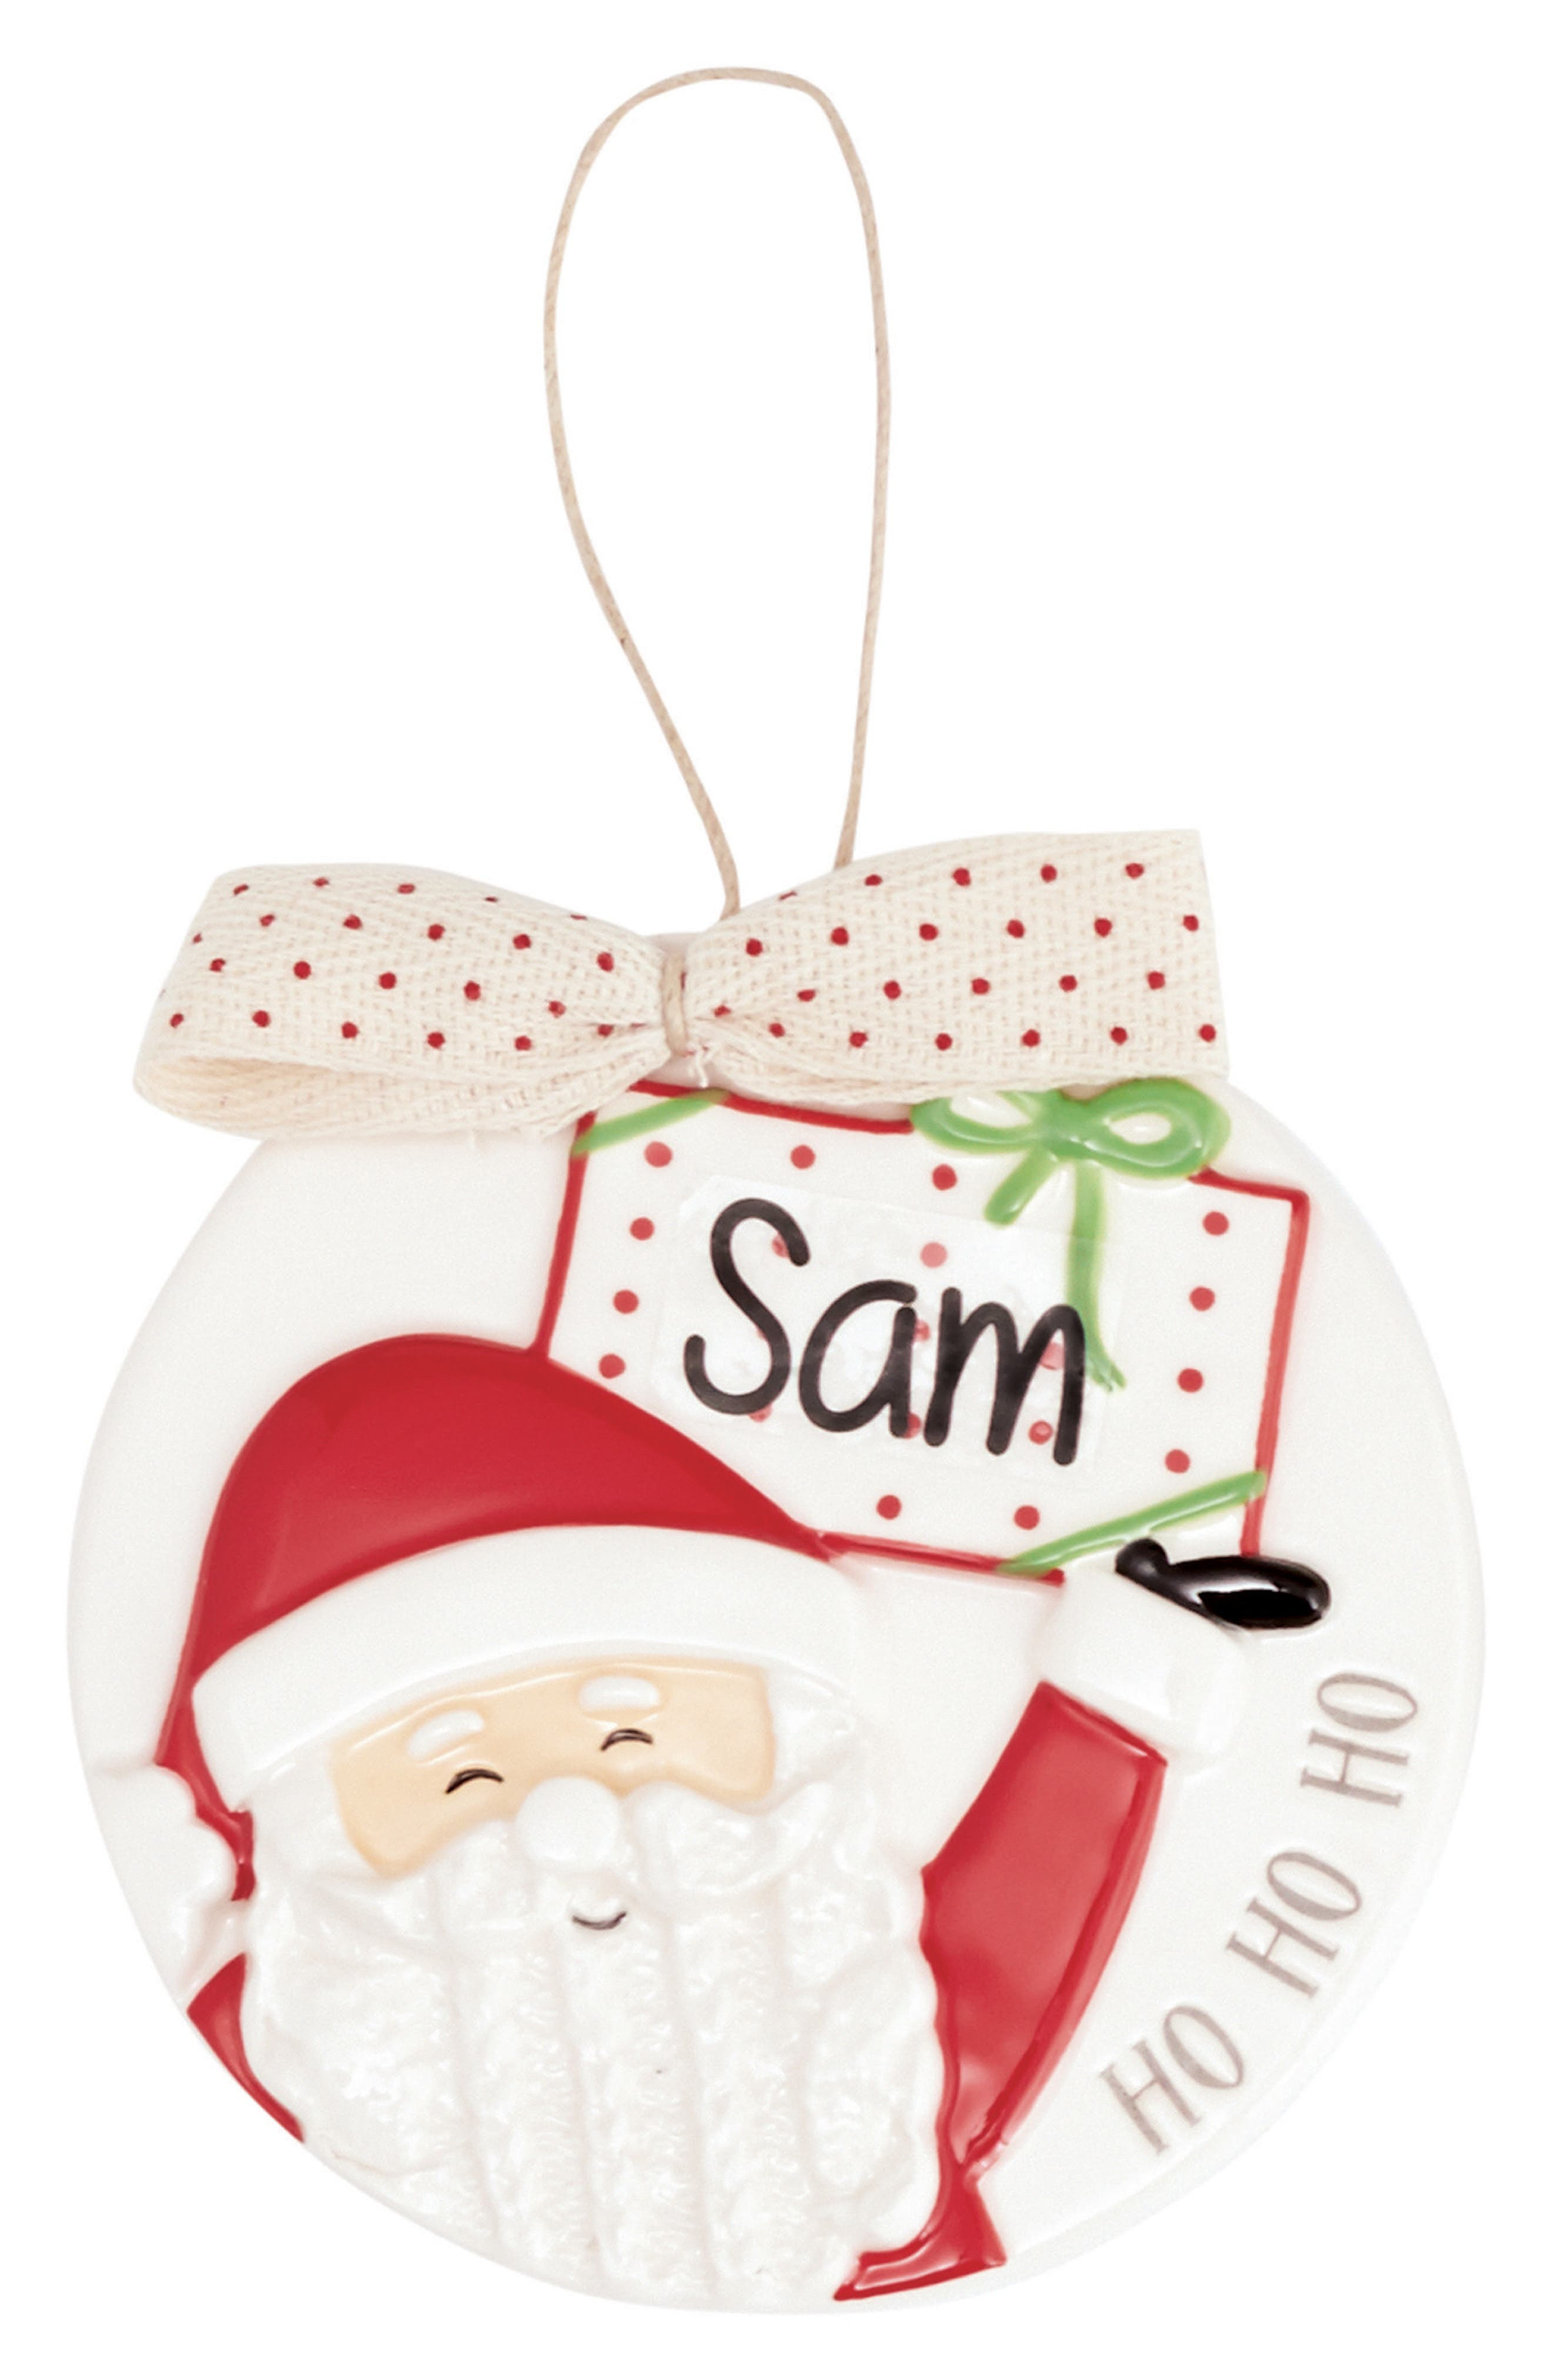 Main Image - Mud Pie Santa Ornament with Personalization Sticker